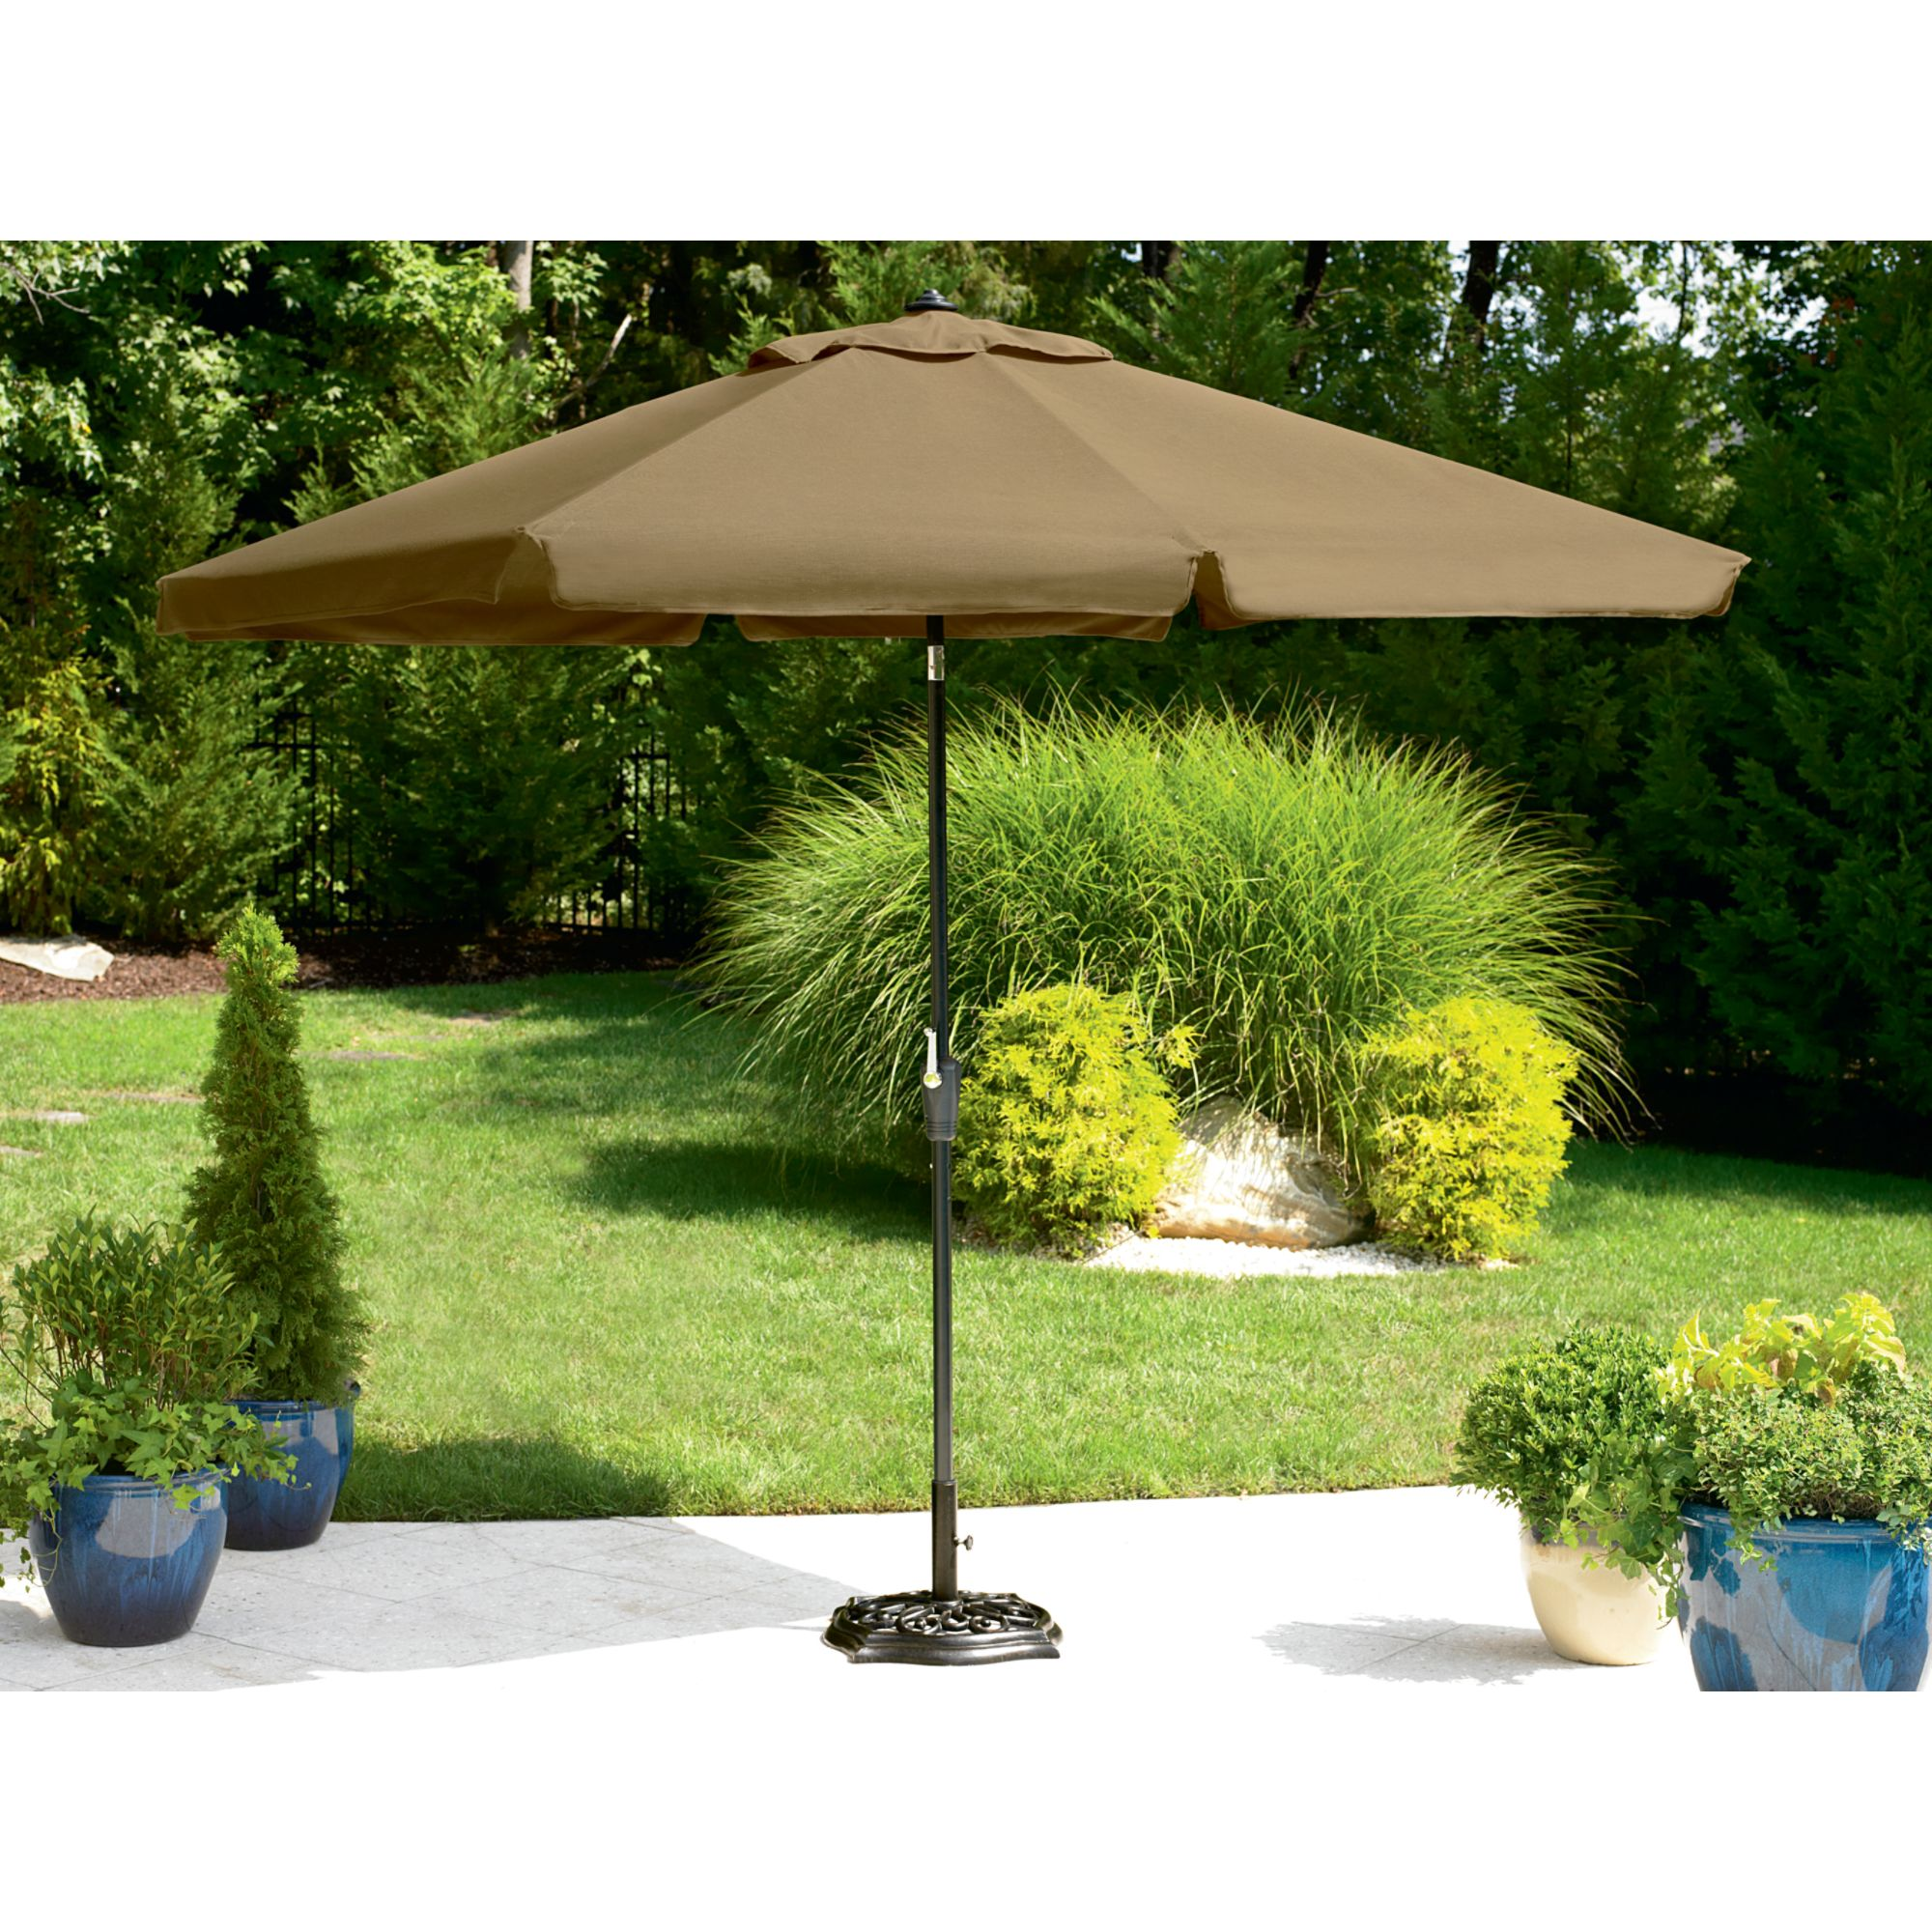 La-boy Caitlyn Umbrella - Outdoor Living Patio